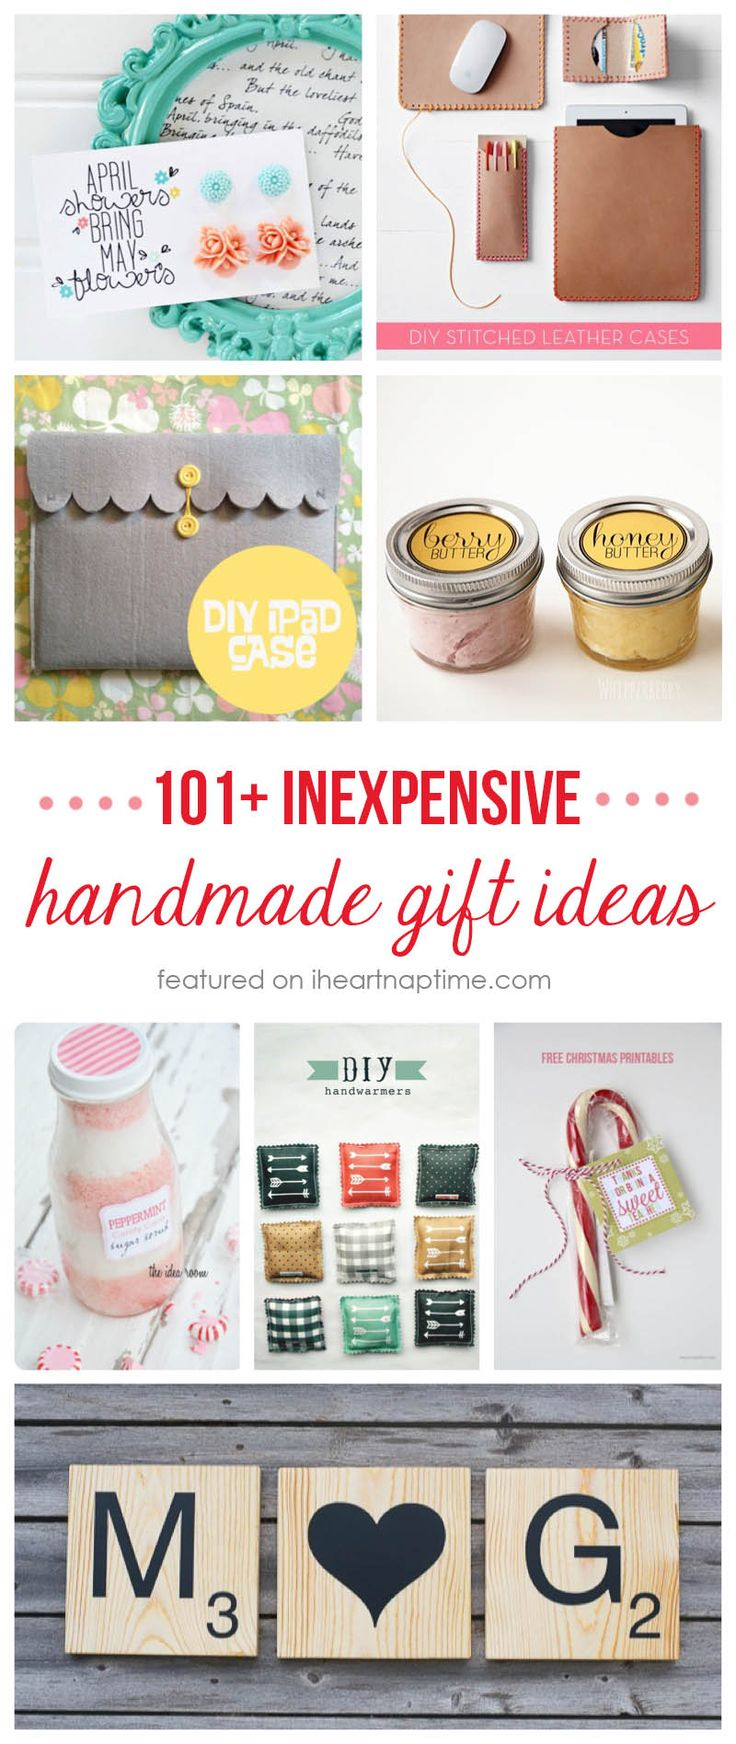 113 best Party Favors images on Pinterest | Wedding ideas, Birthdays ...